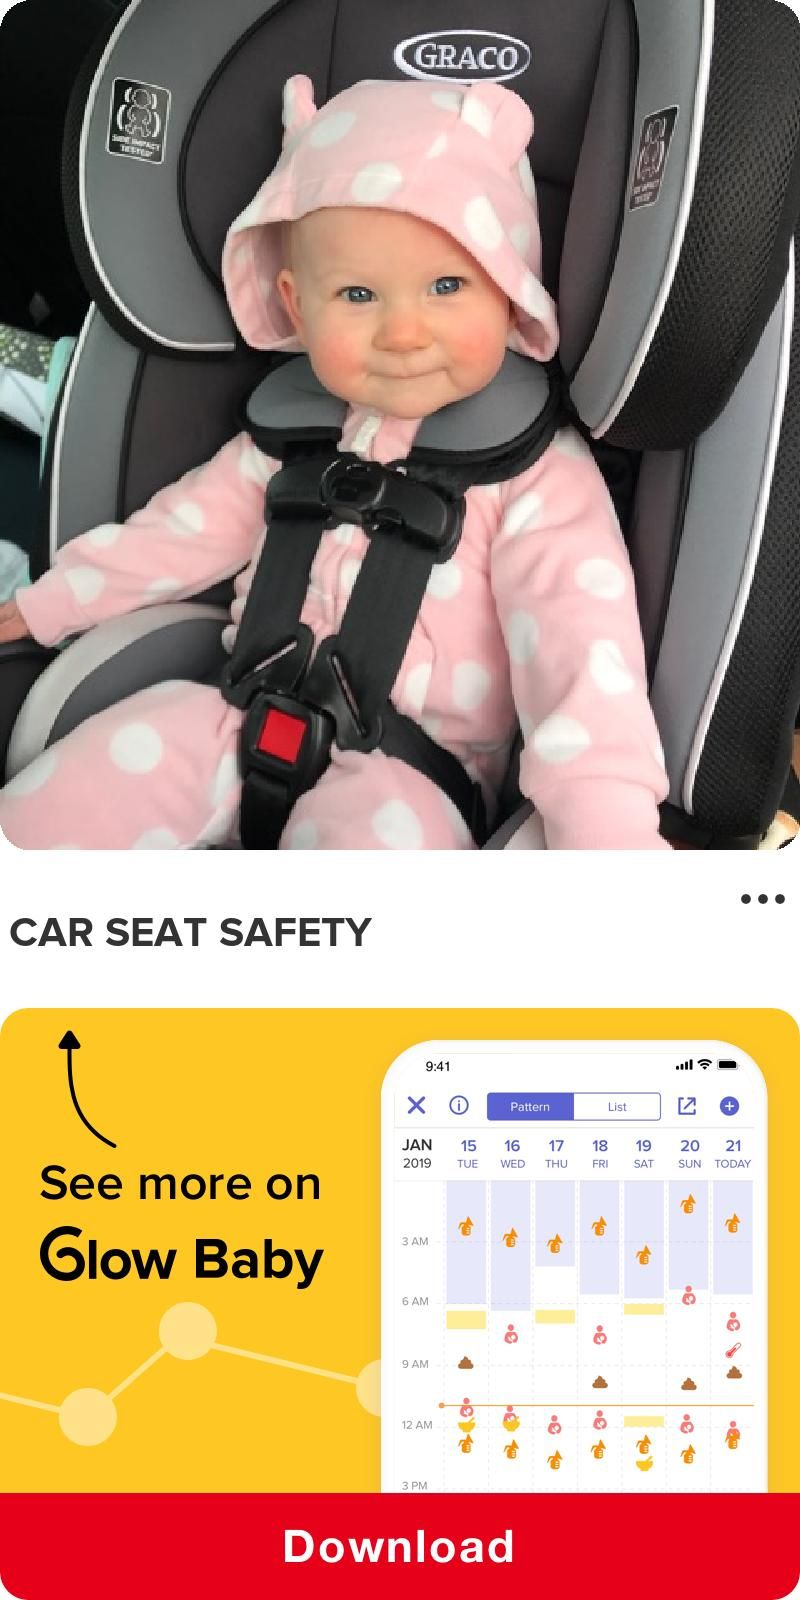 Car Seat Safety I Will Never Not Speak Out About A Child Improperly Restrained In A Car Seat It Never Comes From A In 2020 Car Seats Carseat Safety Baby Bump Photos